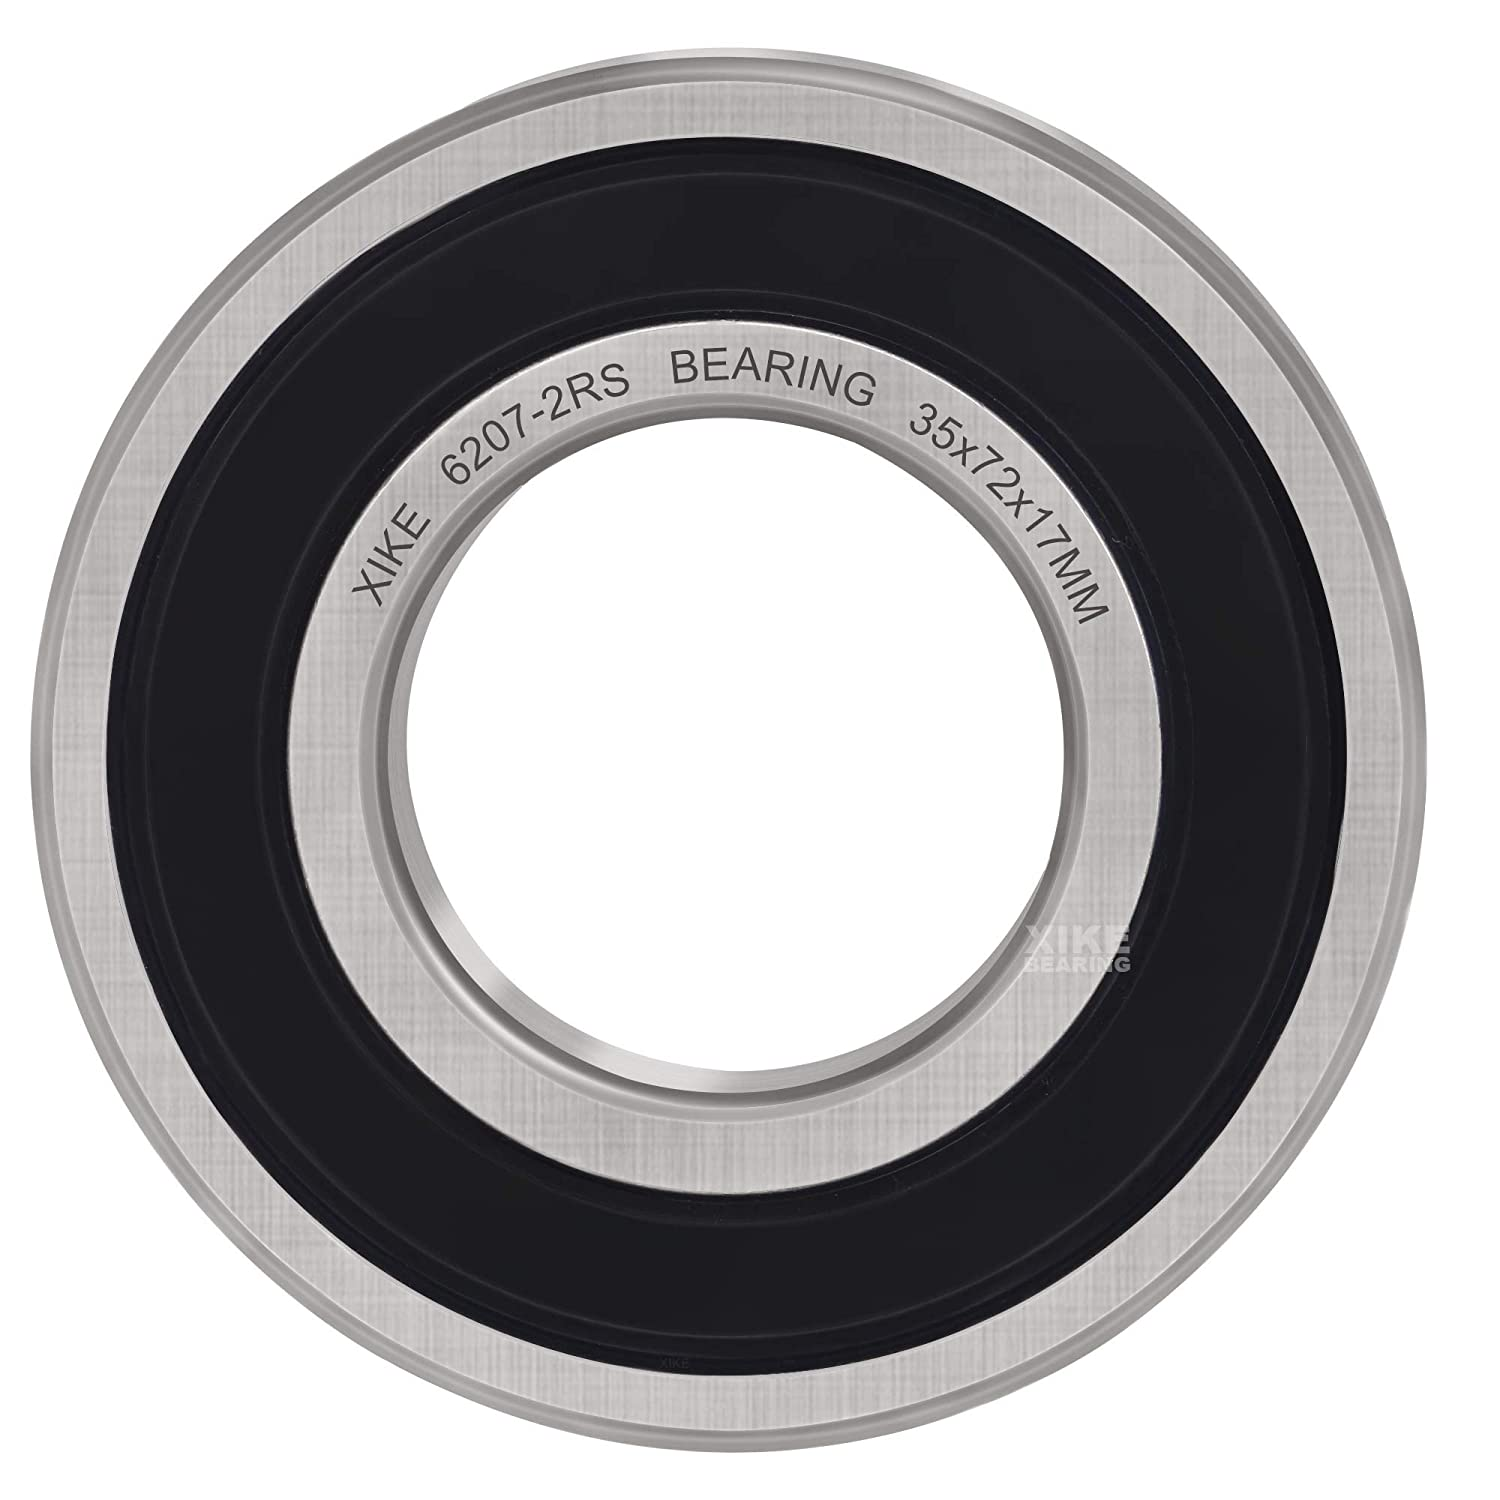 XiKe 4 Pcs 6207-2RS Double Rubber Seal Bearings 35x72x17mm Deep Groove Ball Bearings. Pre-Lubricated and Stable Performance and Cost Effective